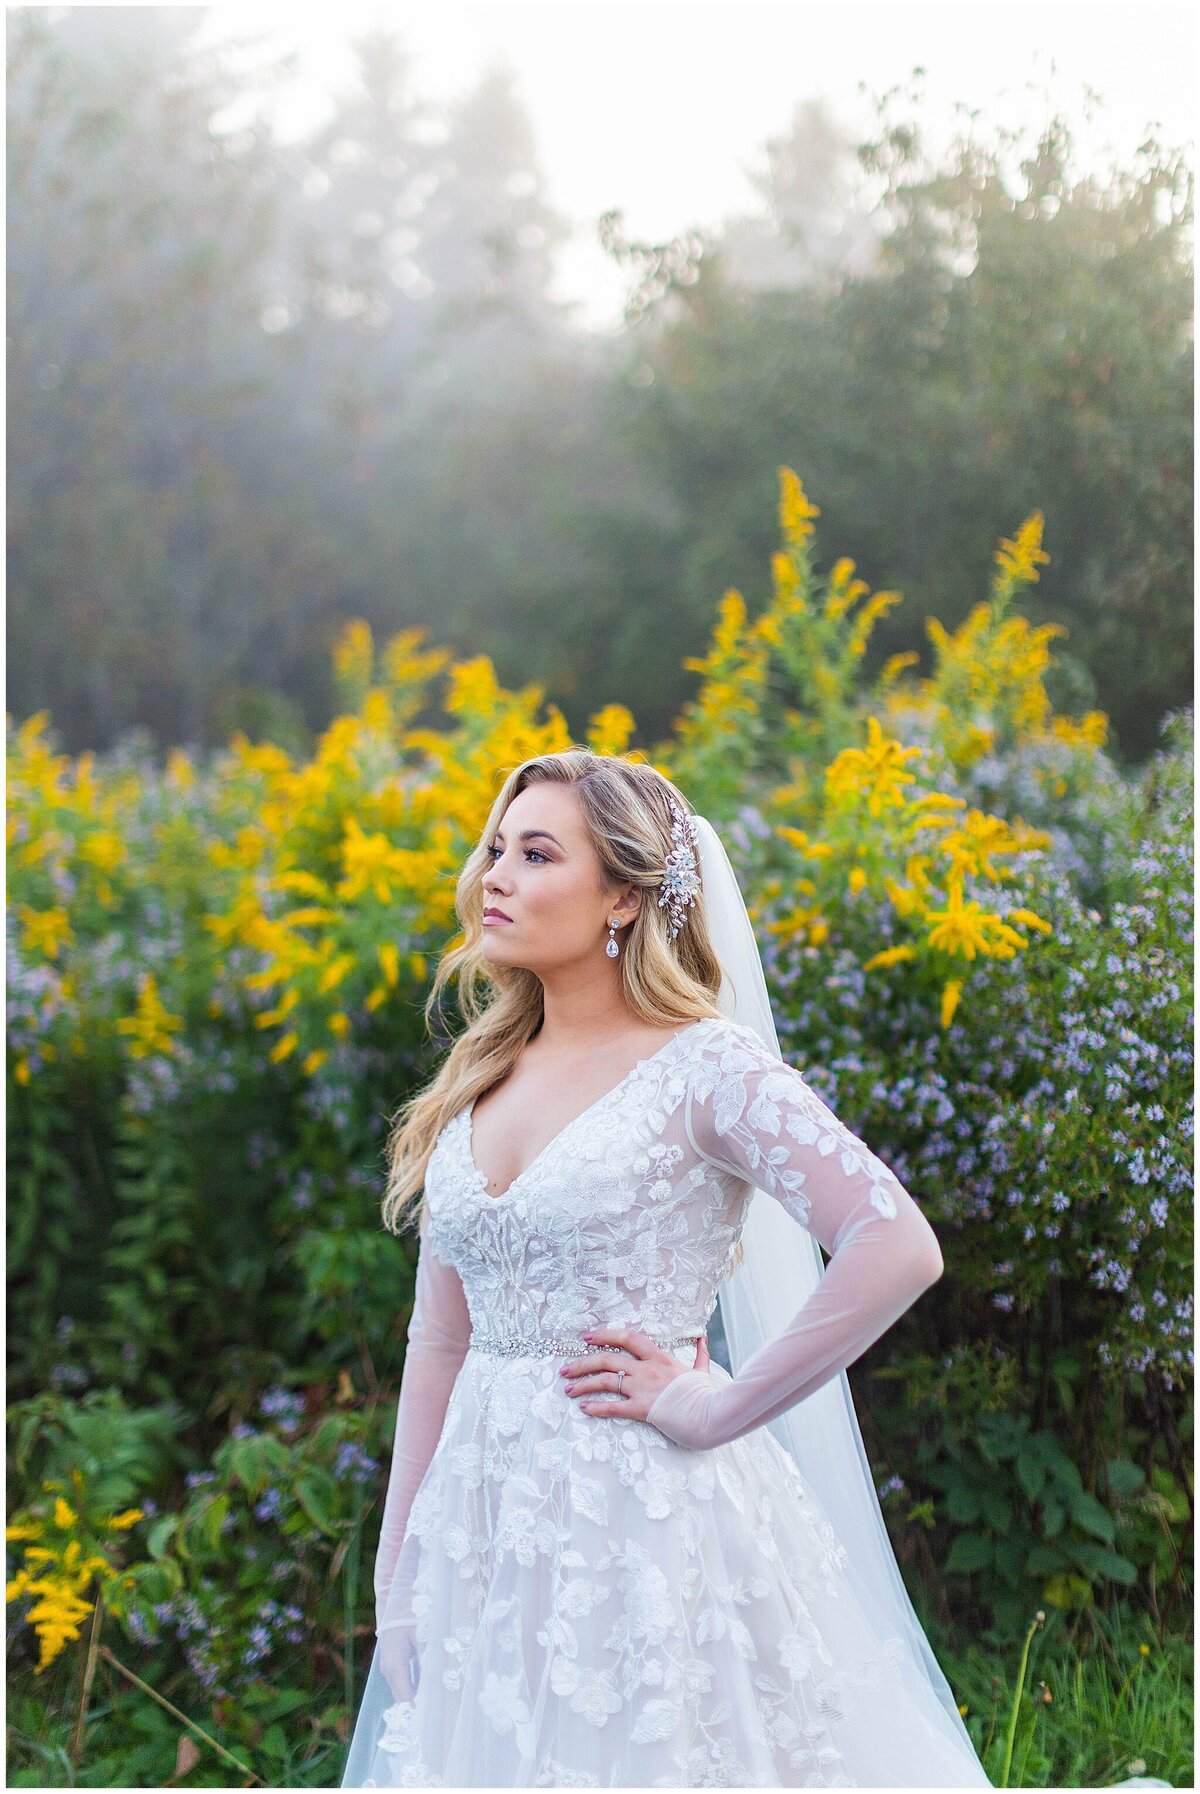 Madalyn Bridals131 September 19, 2019